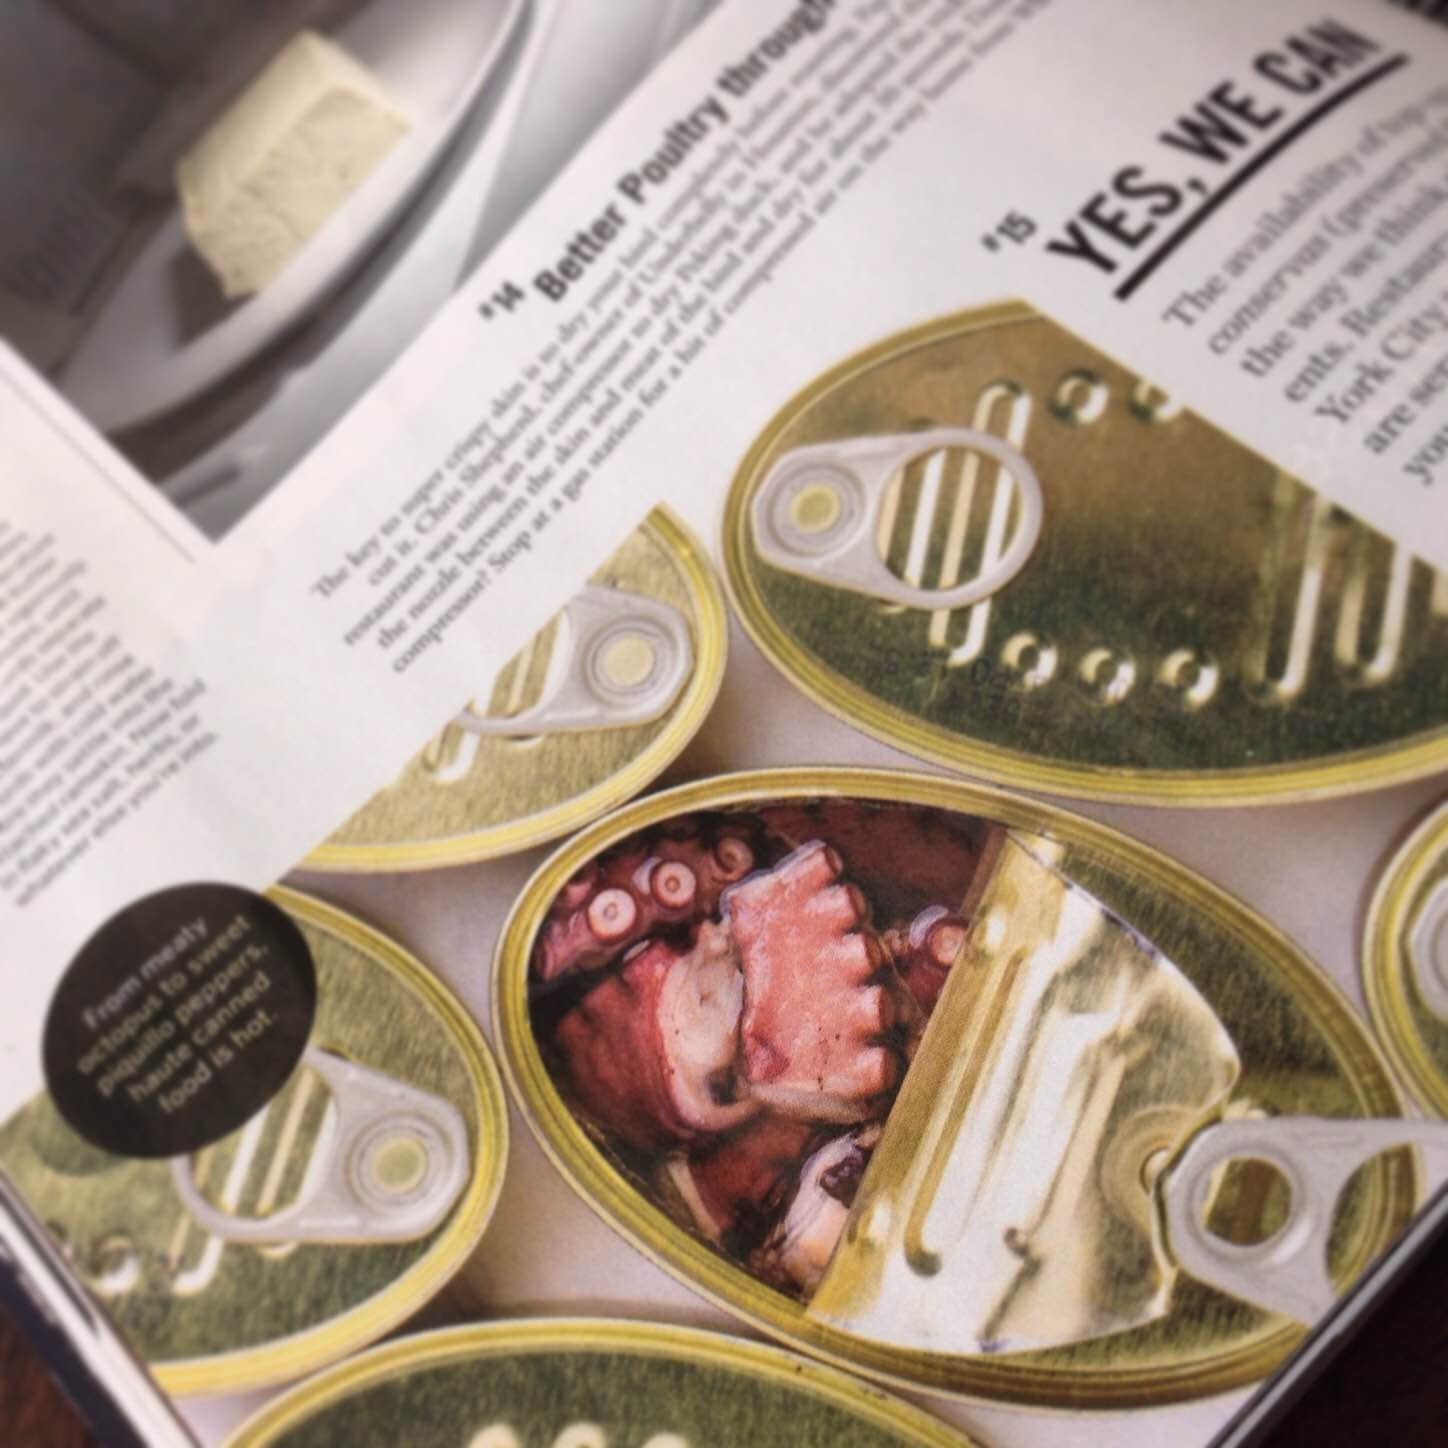 #15 on the Saveur 100 for 2015: Top-Quality Spanish Conservas